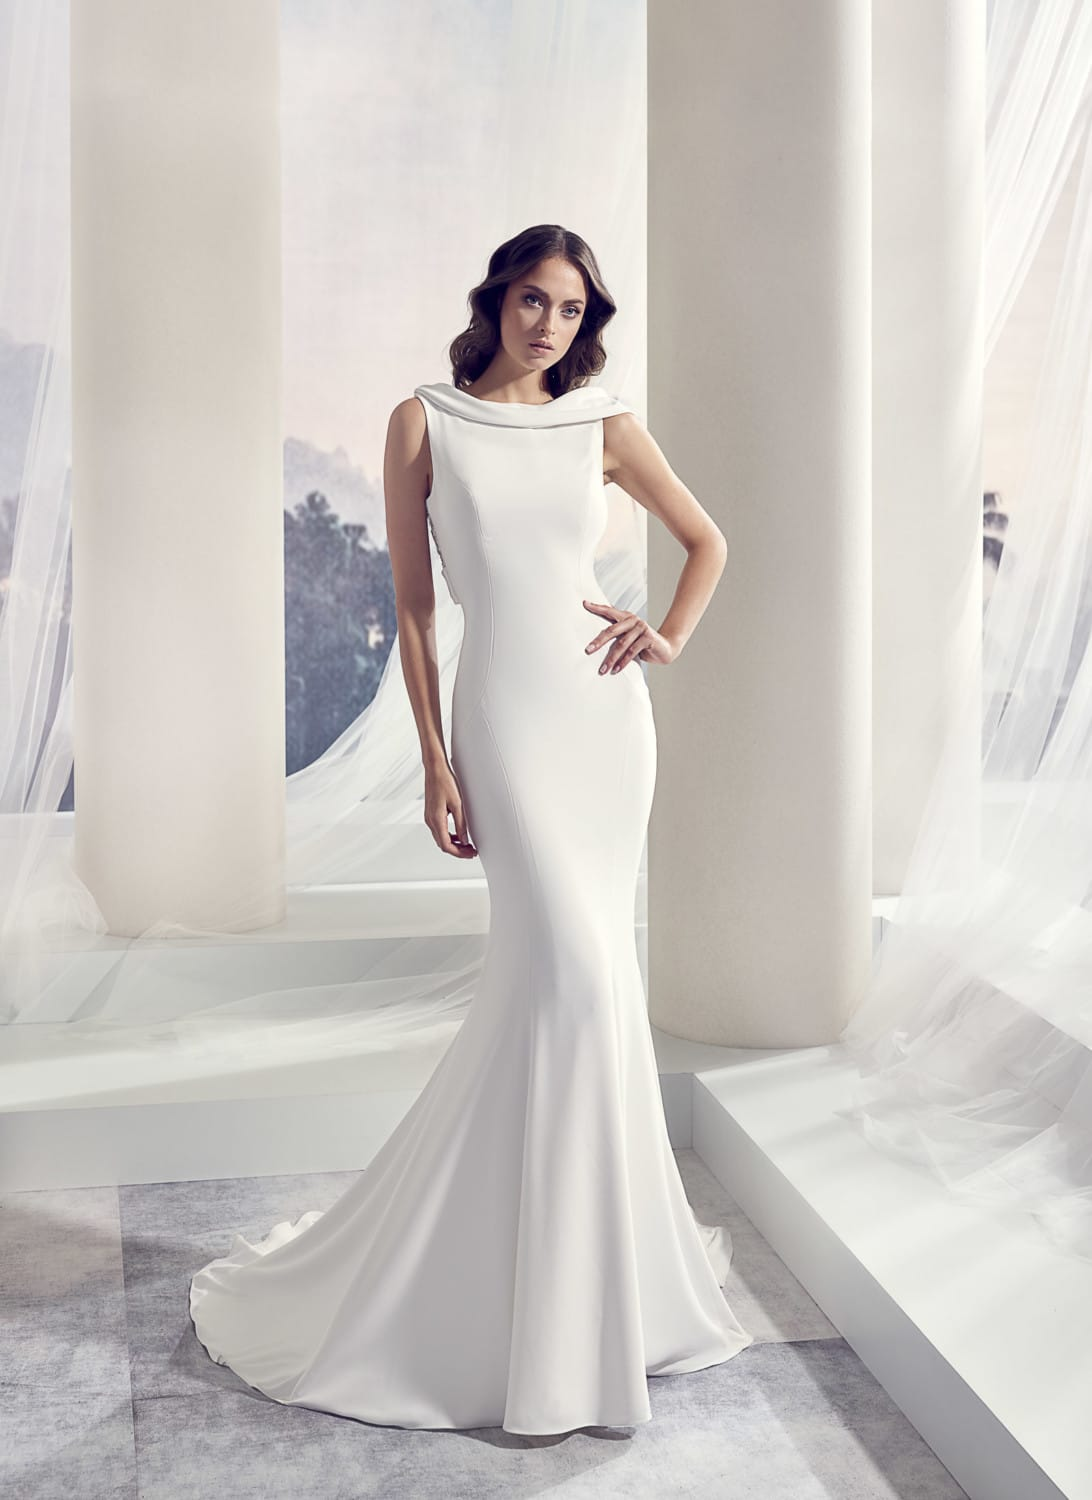 Modeca wedding dress sell my wedding dress online sell for Sell wedding dress online